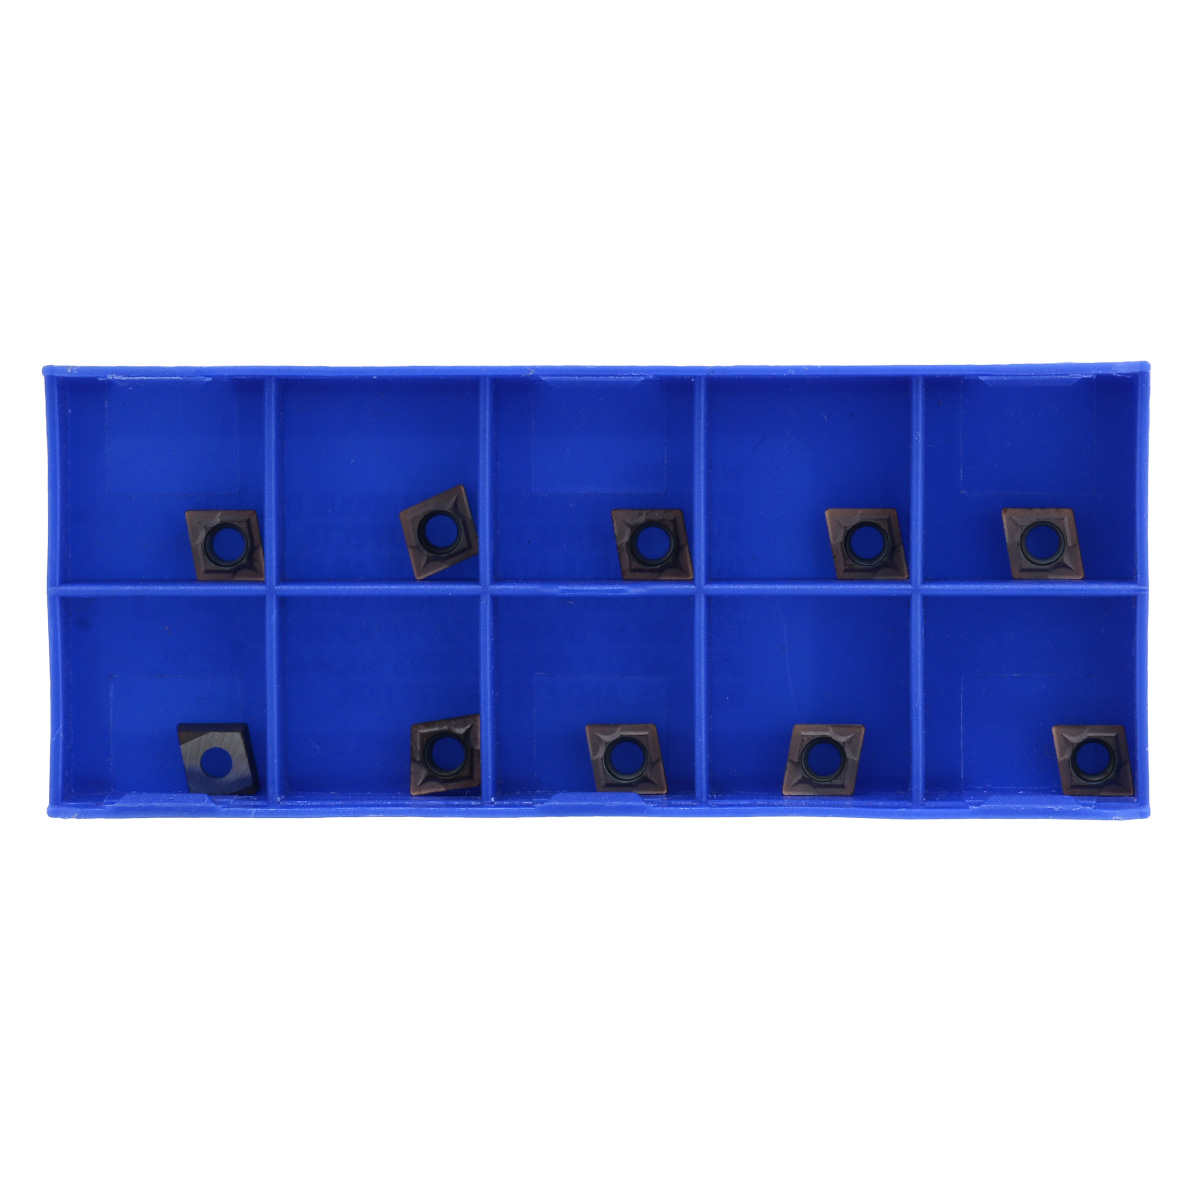 10pcs CCMT060204 VP15TF Carbide Inserts Durable Blades 1pc SCLCR1212H06 Lathe Turning Tool Holder Wrench for Manufacturing in Turning Tool from Tools